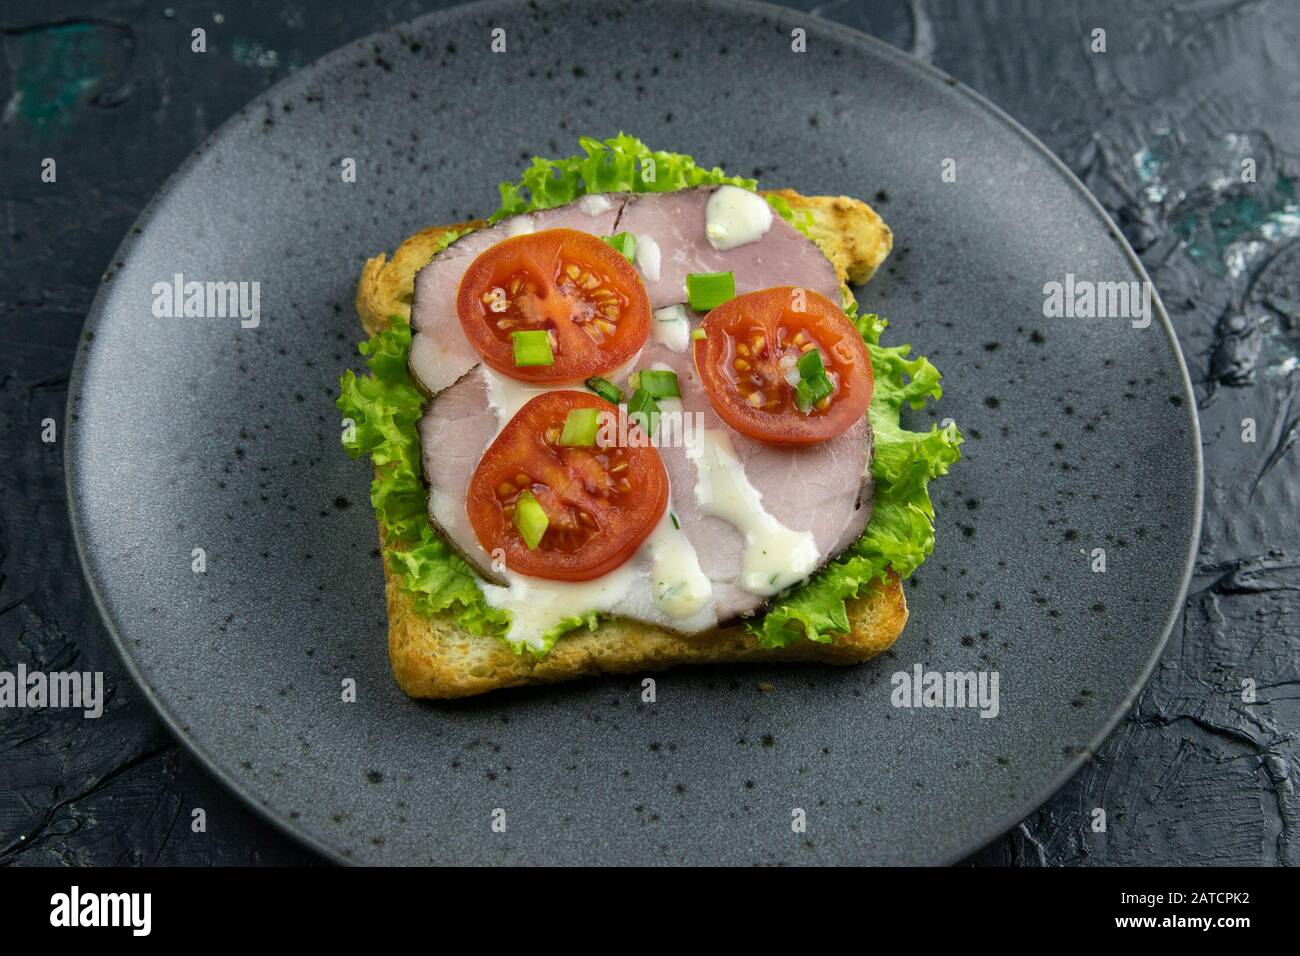 Sandwich with ham and tomatoes on gray plate Stock Photo